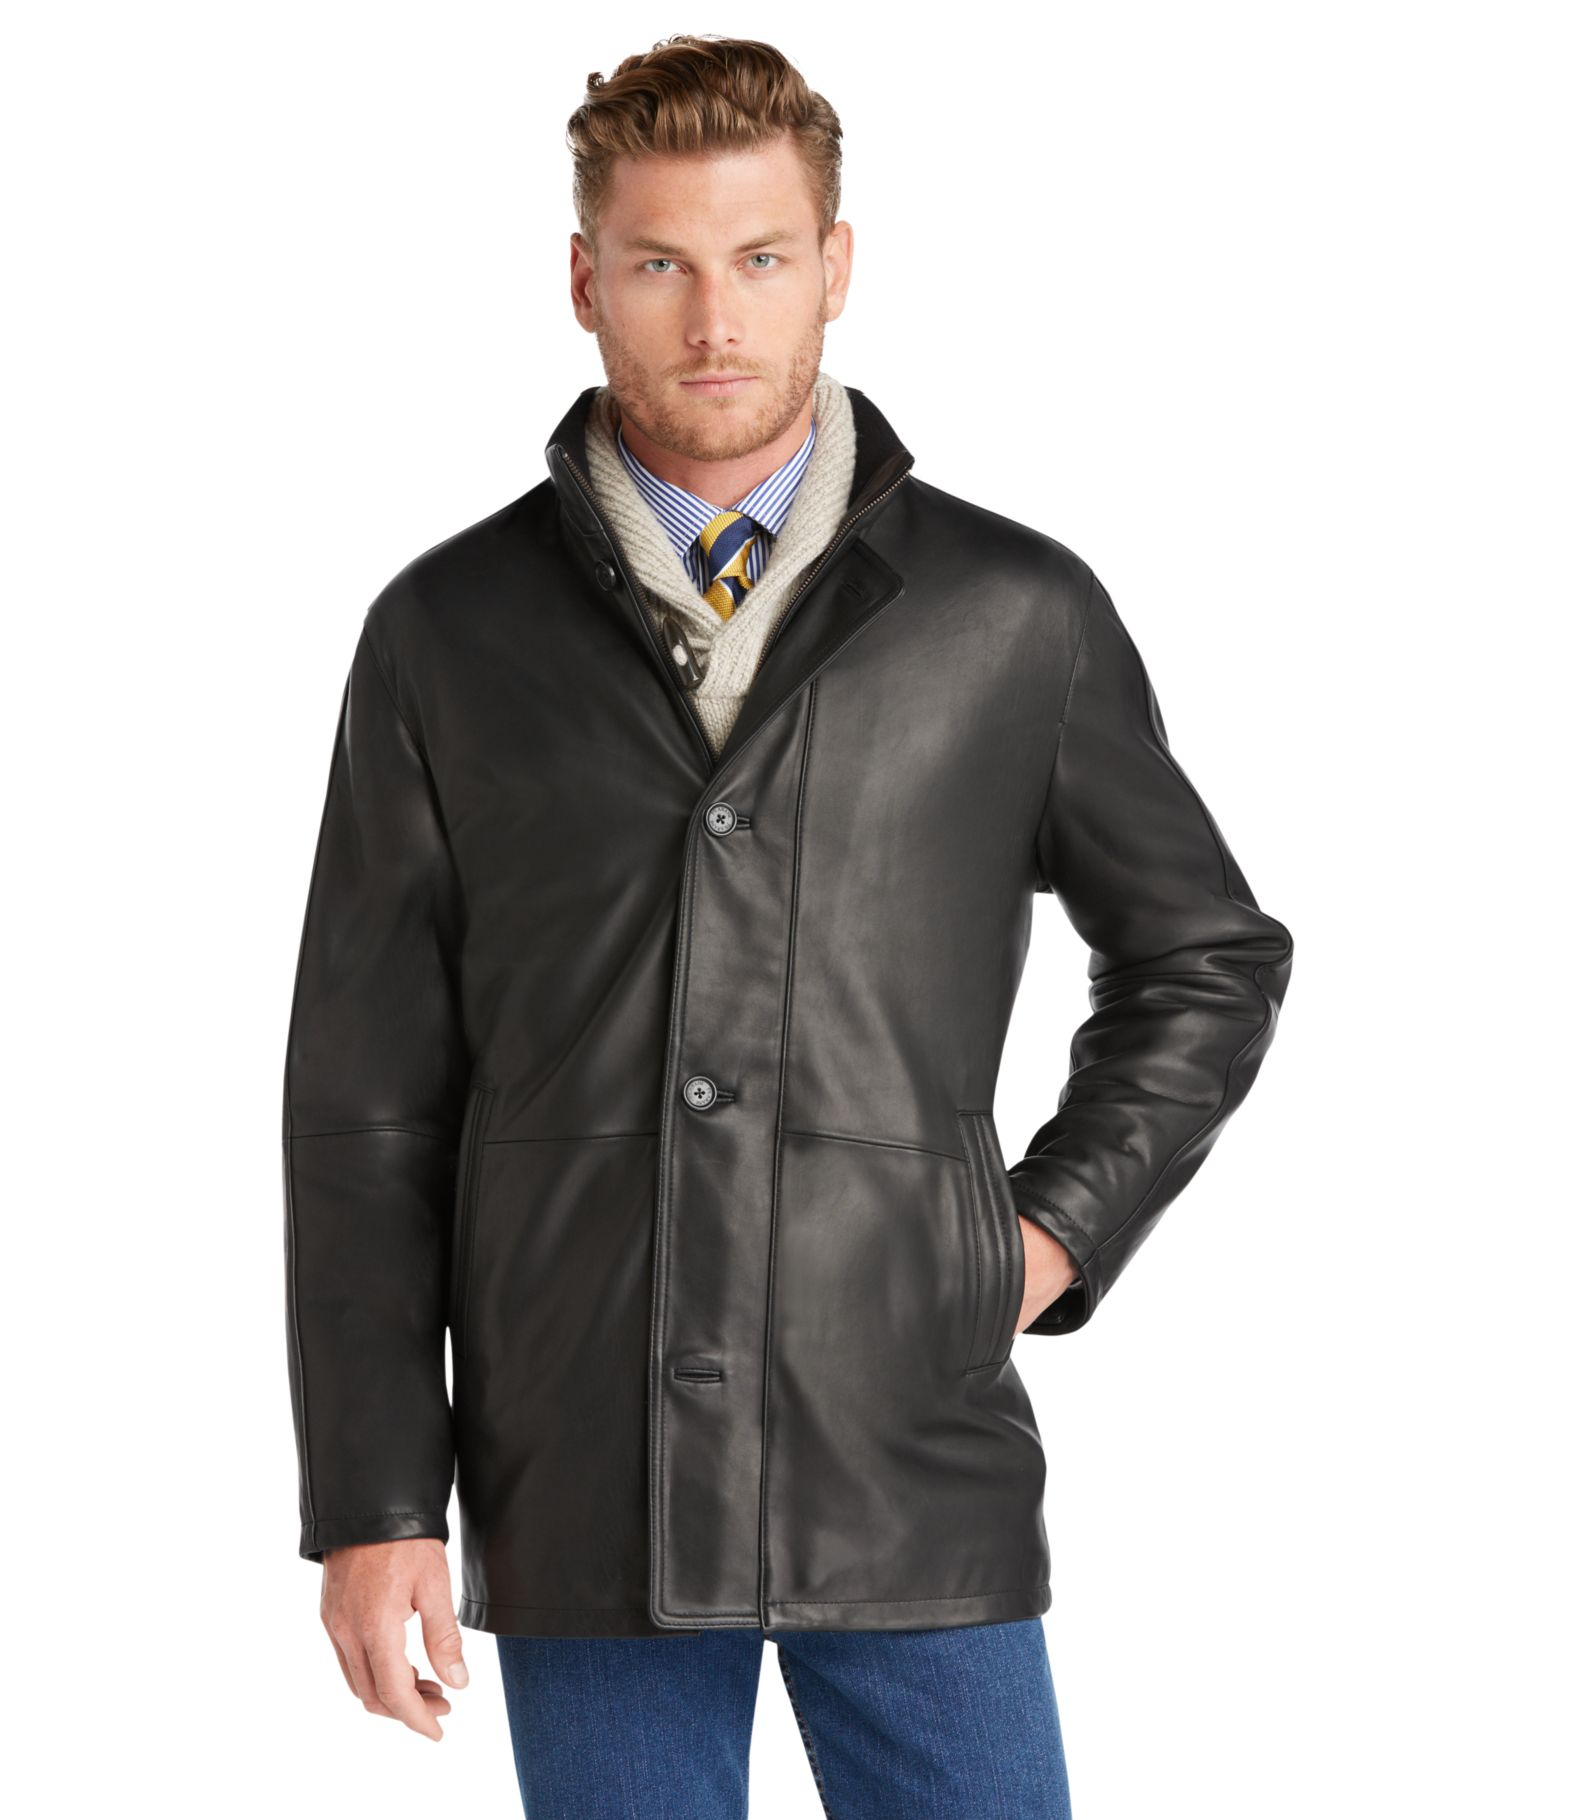 Men's Leather Jackets & Bomber Jackets | Men's Outerwear | JoS. A ...